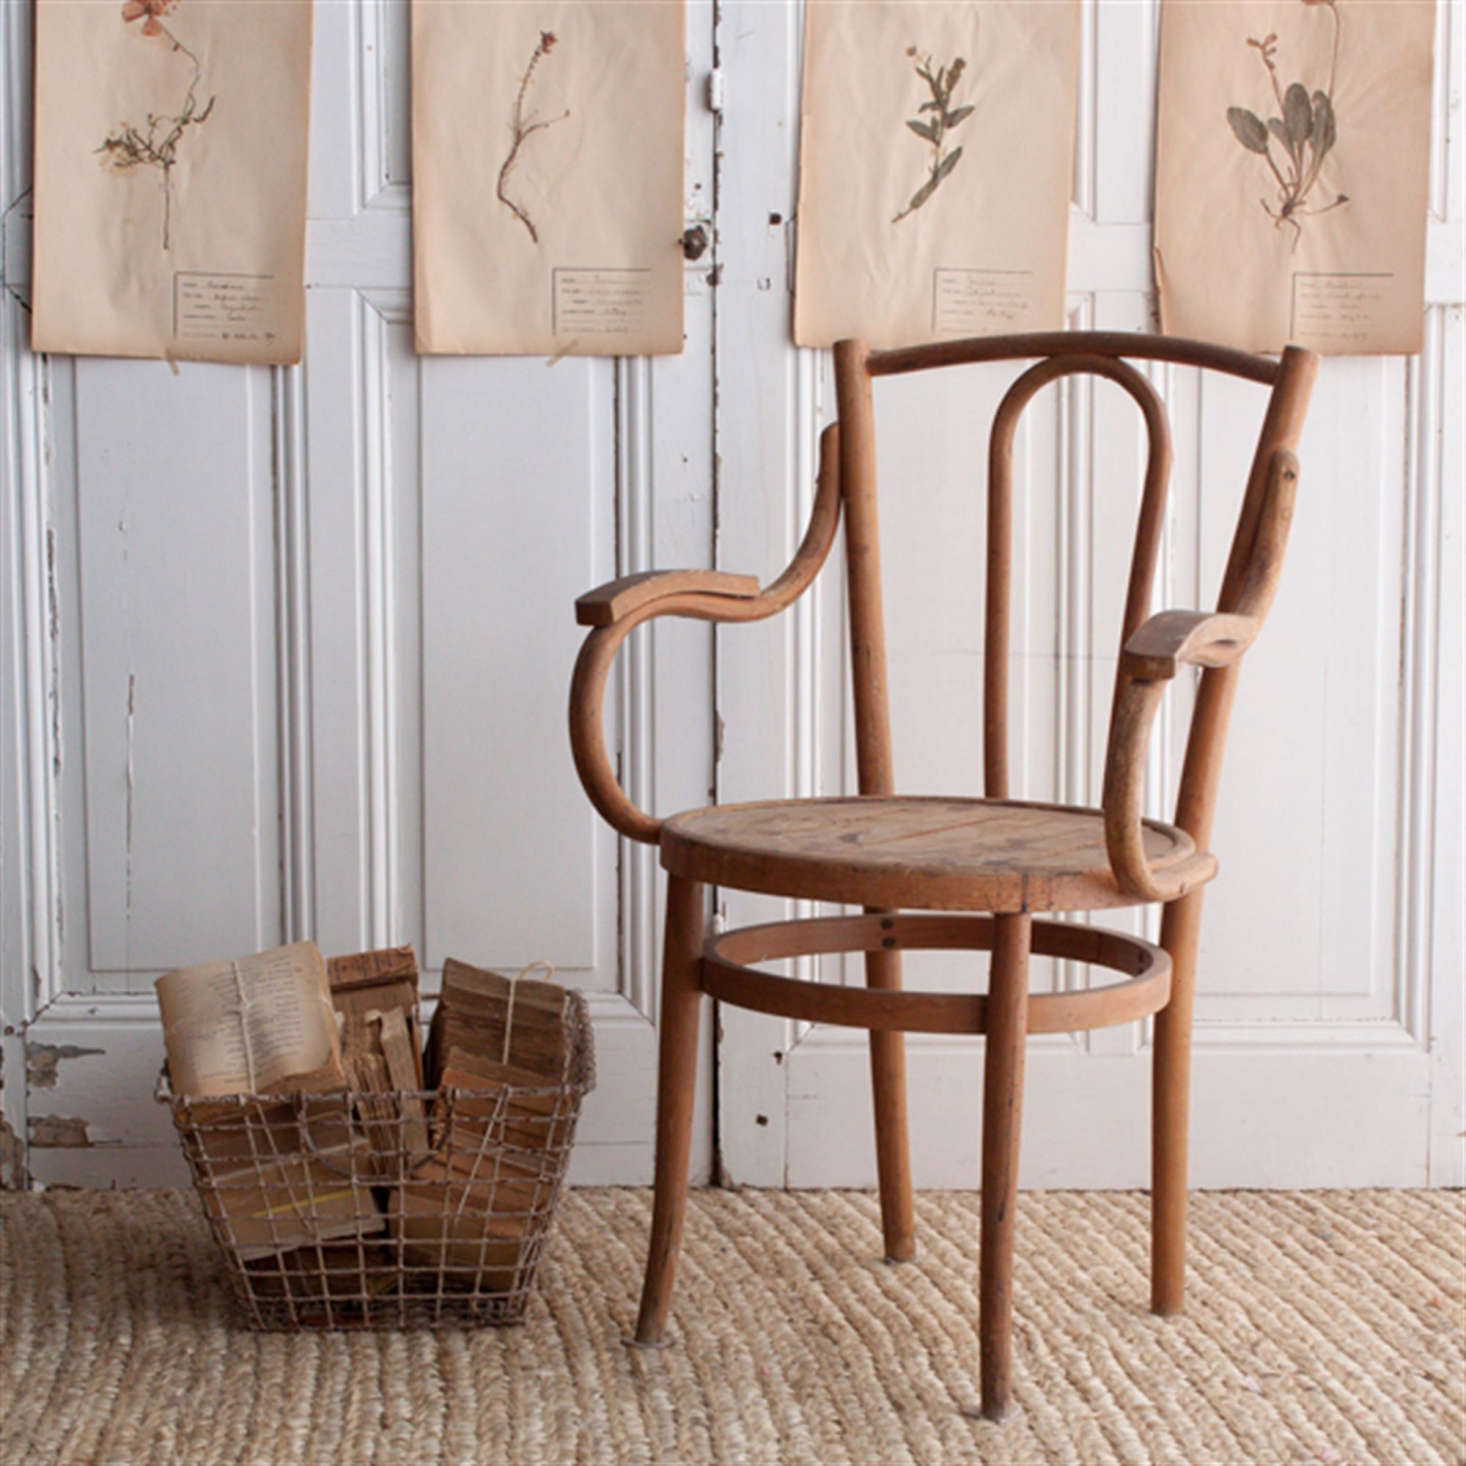 Spotted on Elsie Green: charmingly faded pressed botanicals. See Current Obsessions: The Summer Cottage